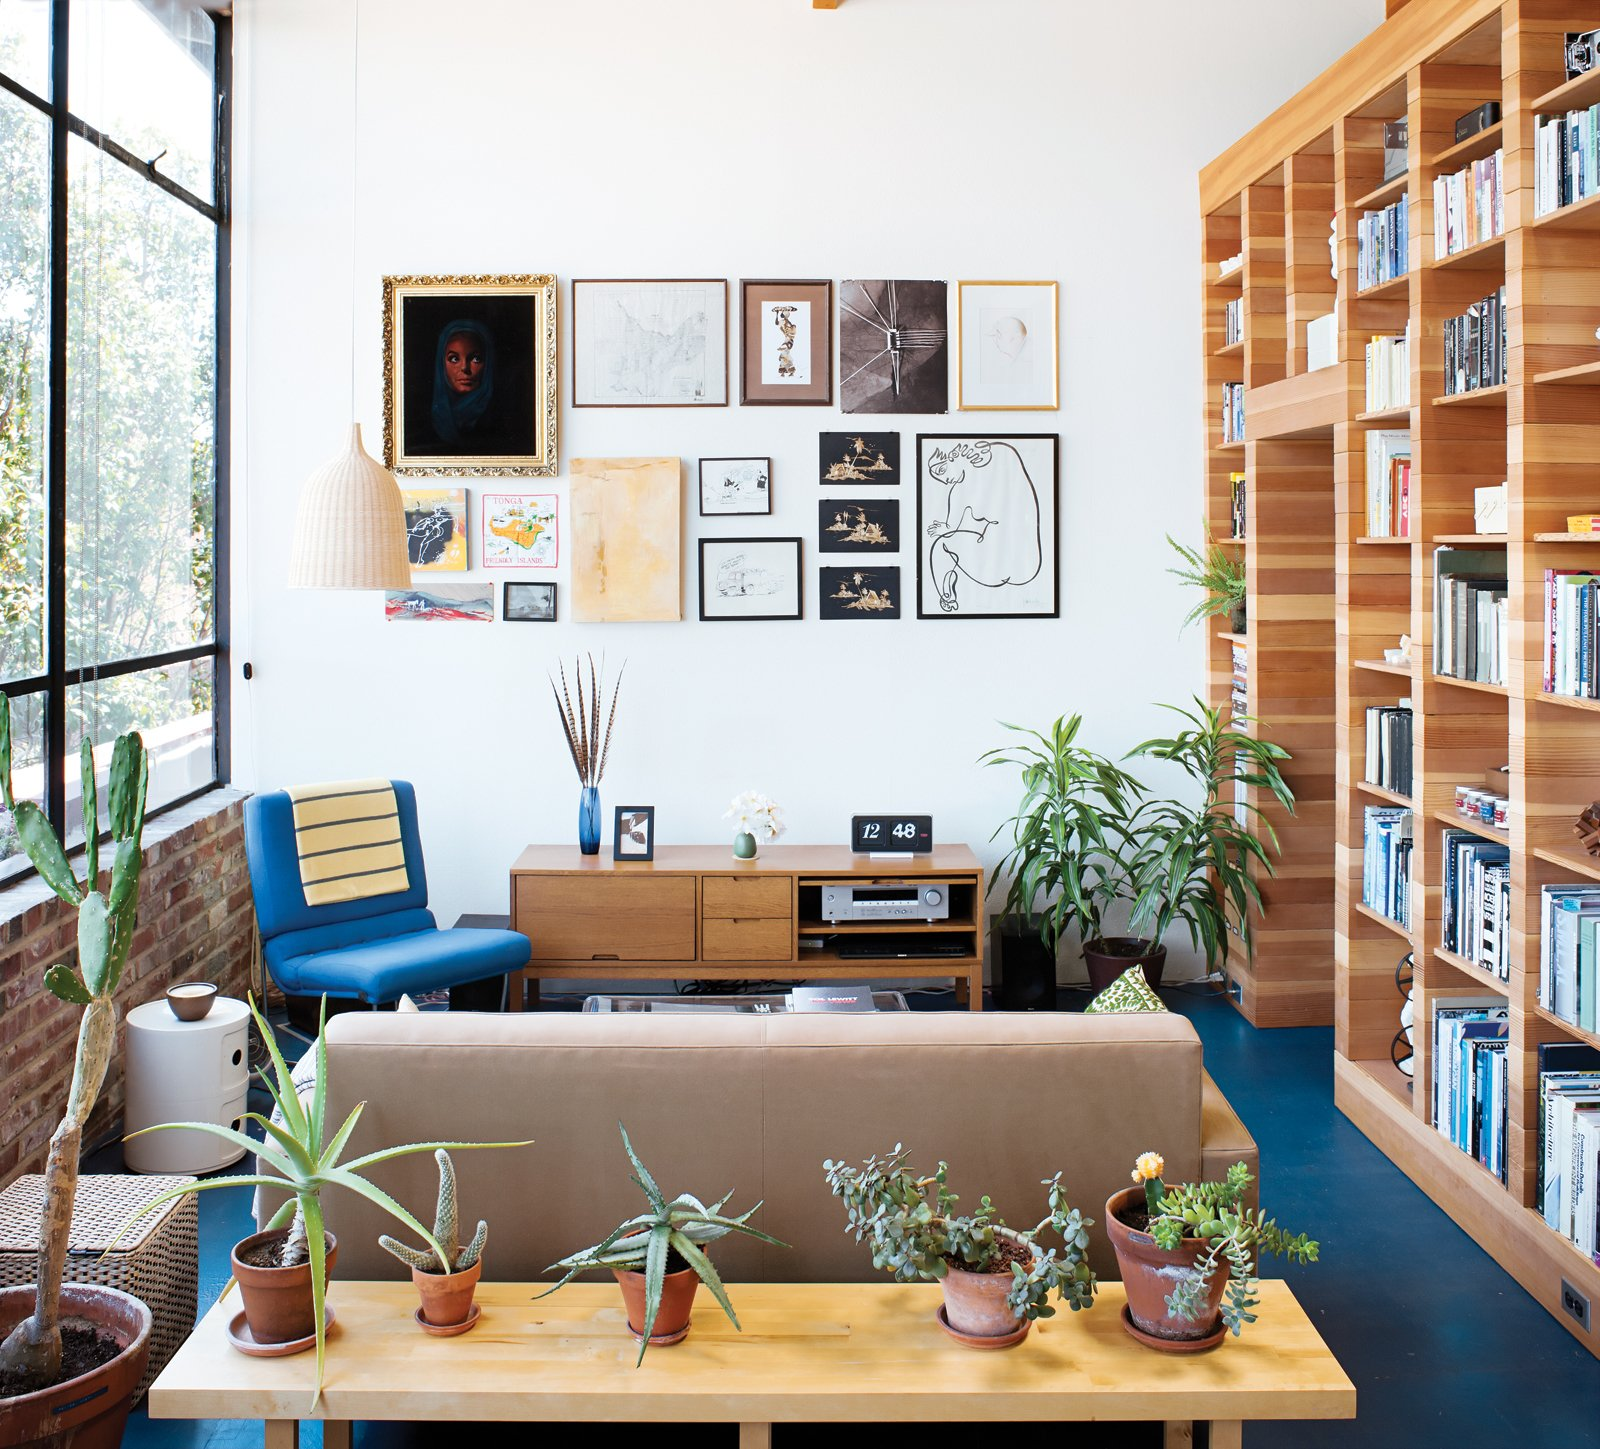 Persistence paid off for this California couple who worked overtime for two years to tackle their all-in-one loft renovation. 30+ Modern Homes With Libraries by Matthew Keeshin